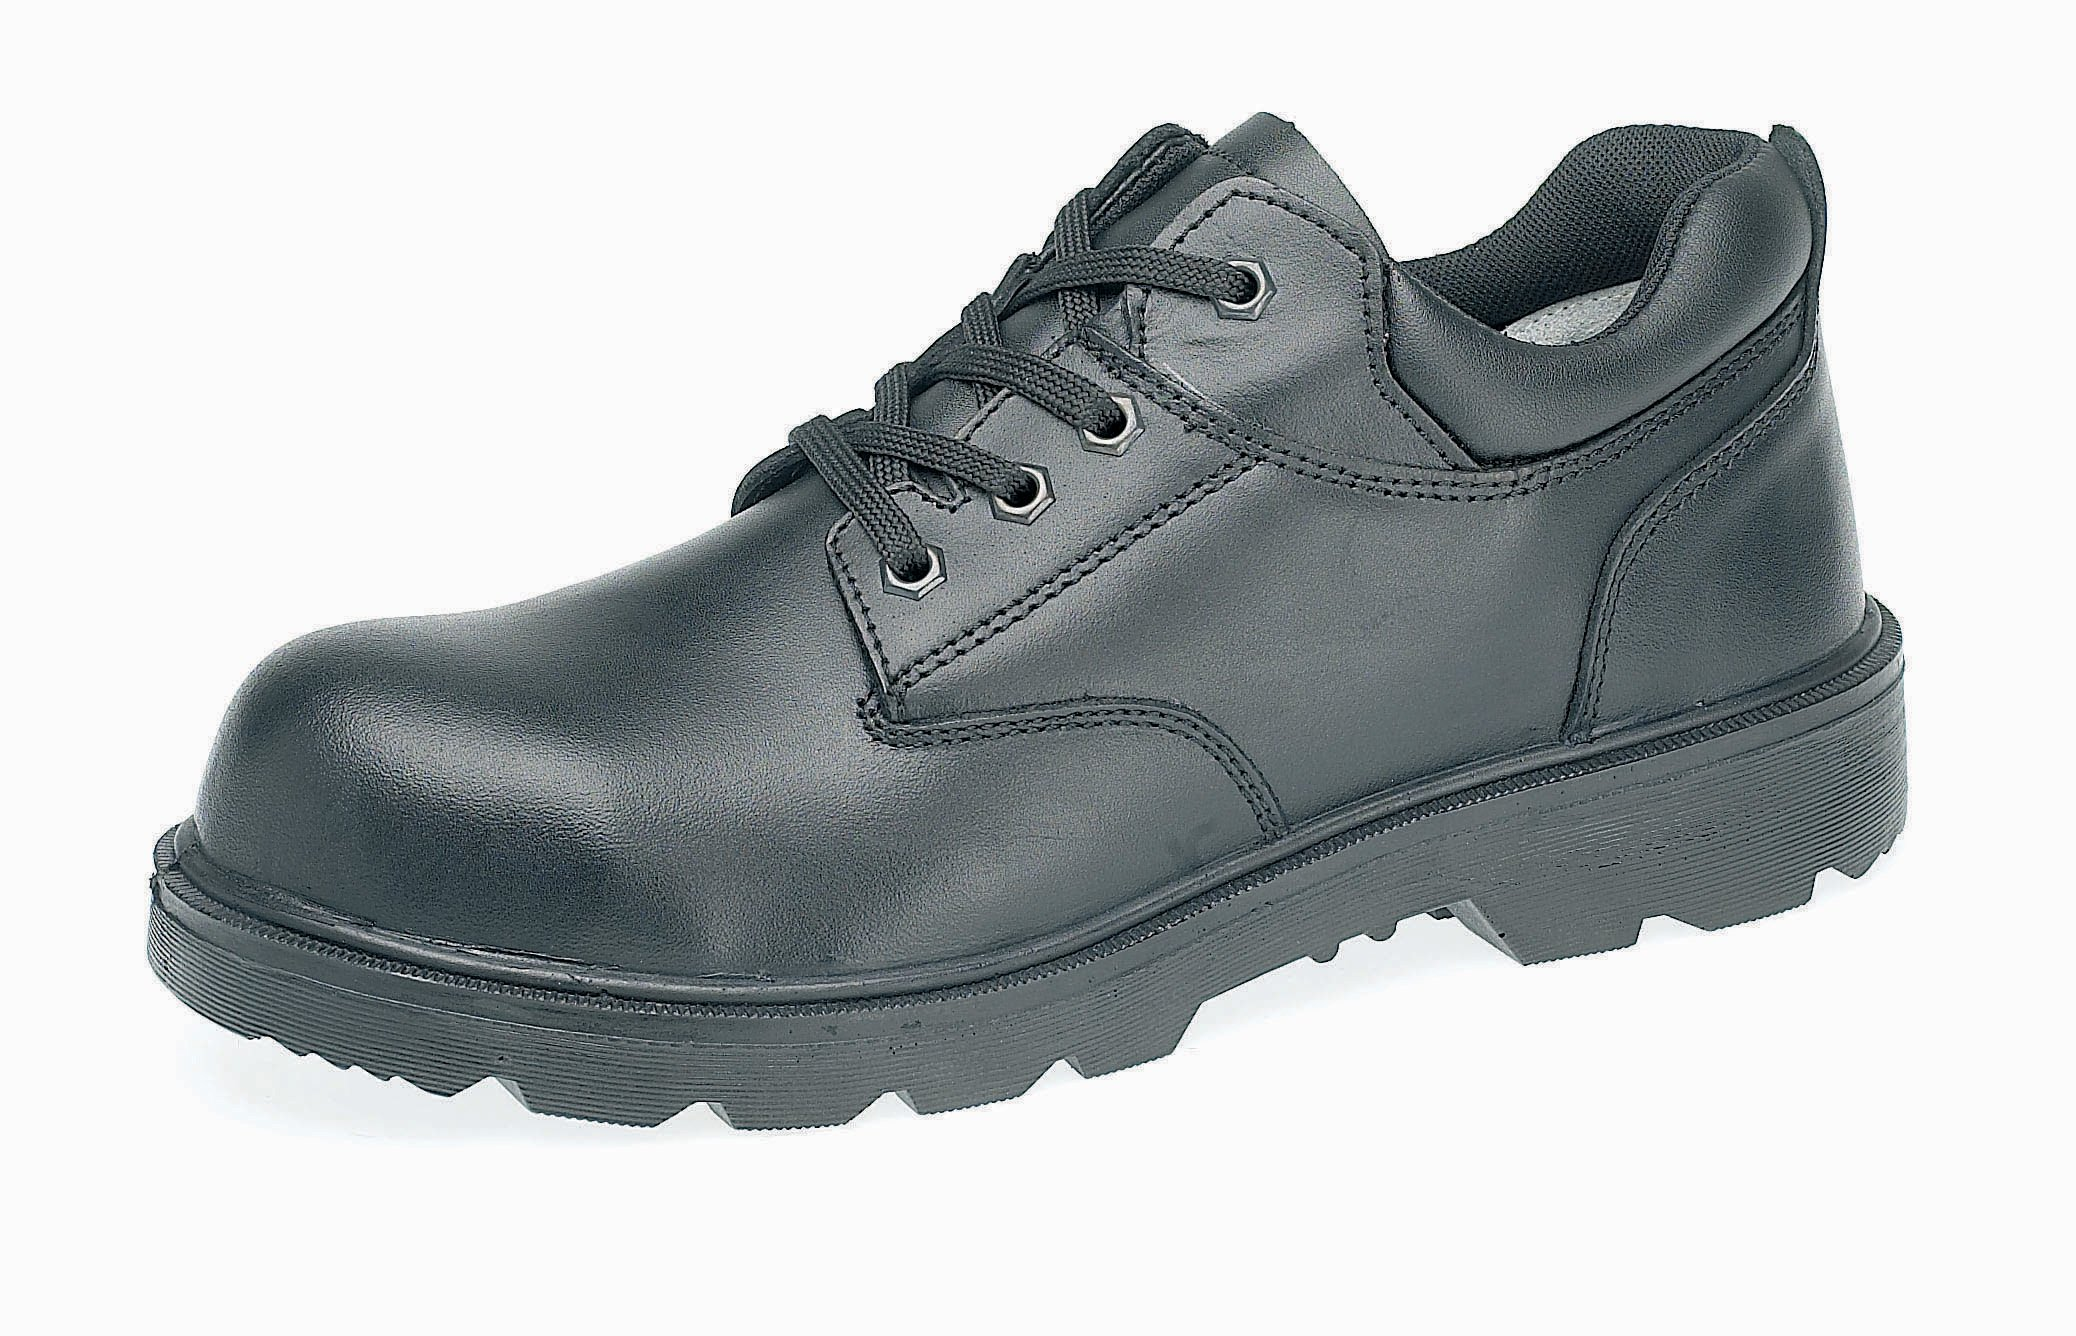 Capps Men's LH833SM Water Resistant Smooth Leather Gibson Safety Shoe With Steel Midsole US Size 9 Black